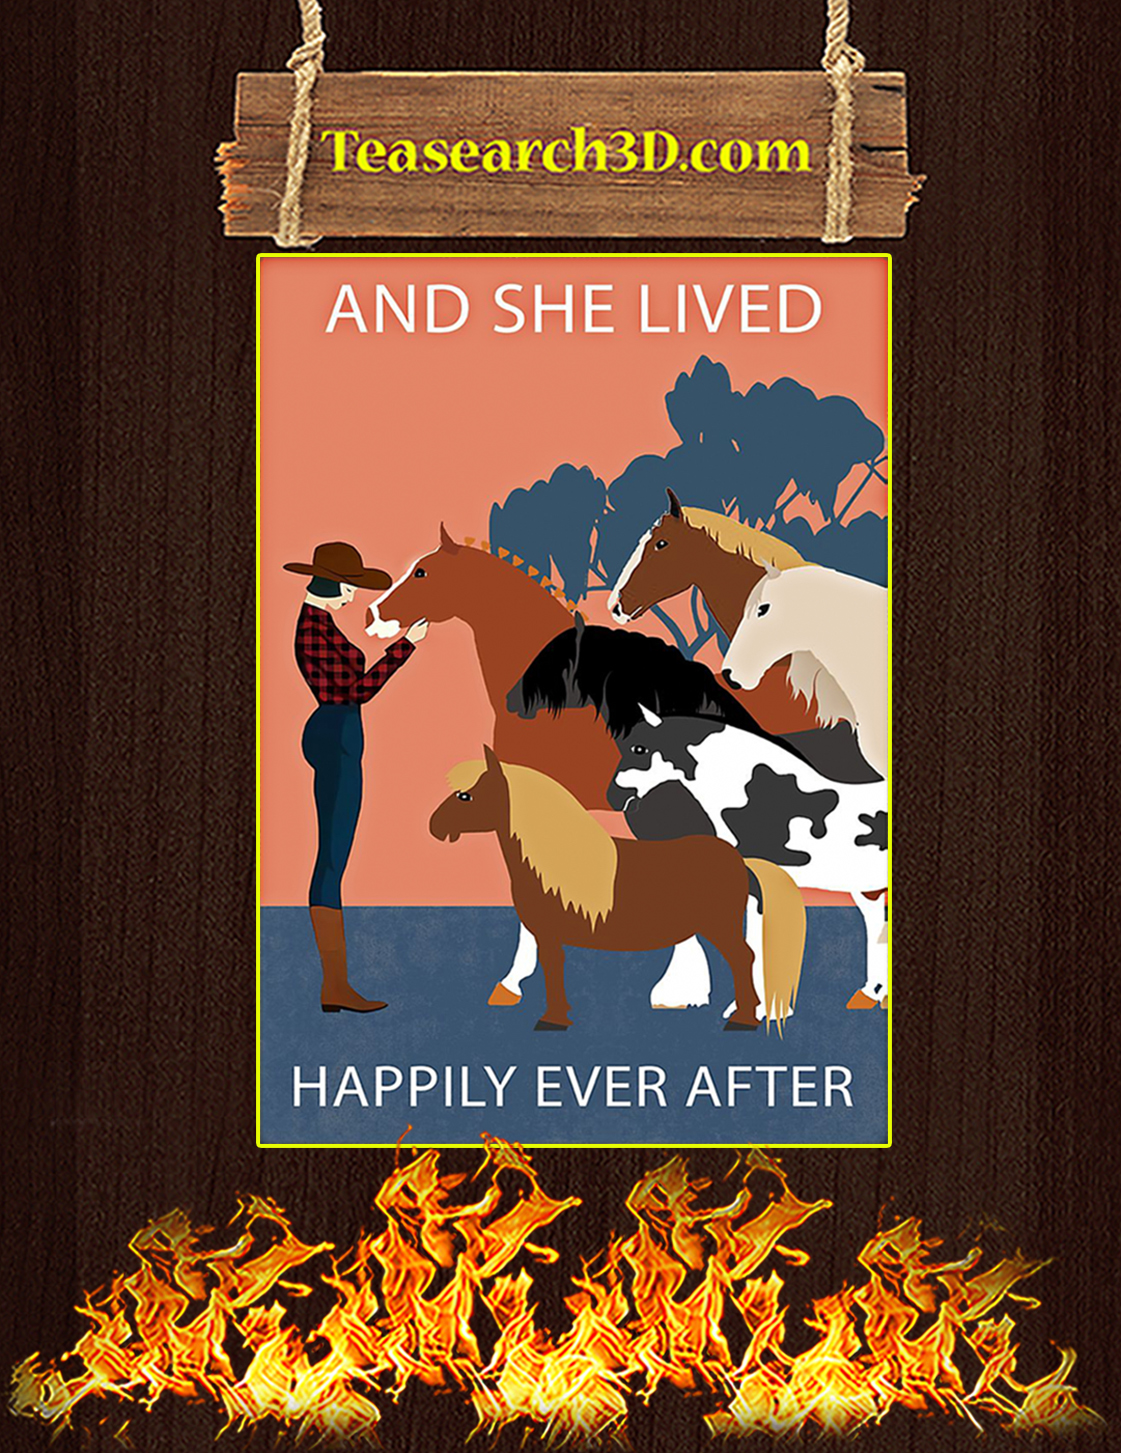 Horse And she lived happily ever after poster A3